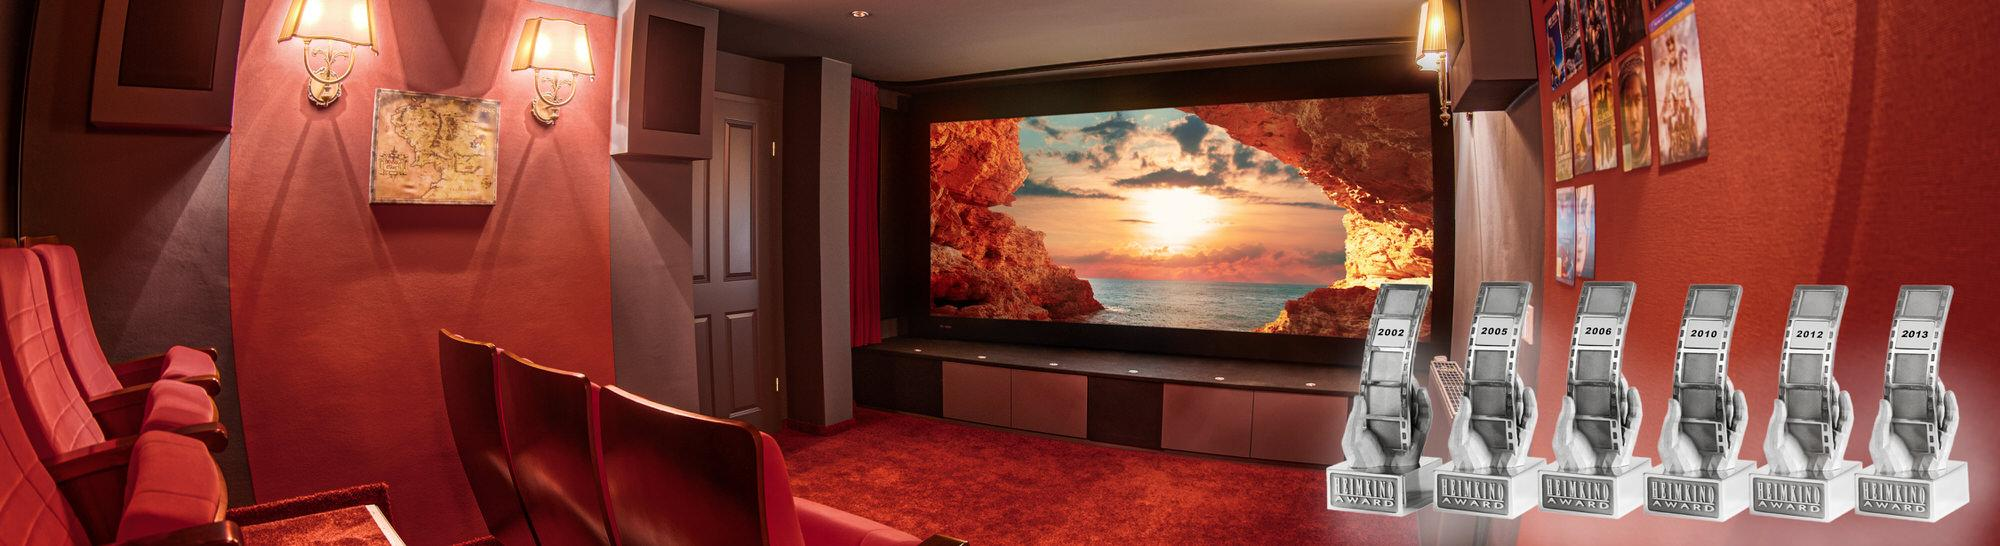 IMMERSIVE HOME CINEMA